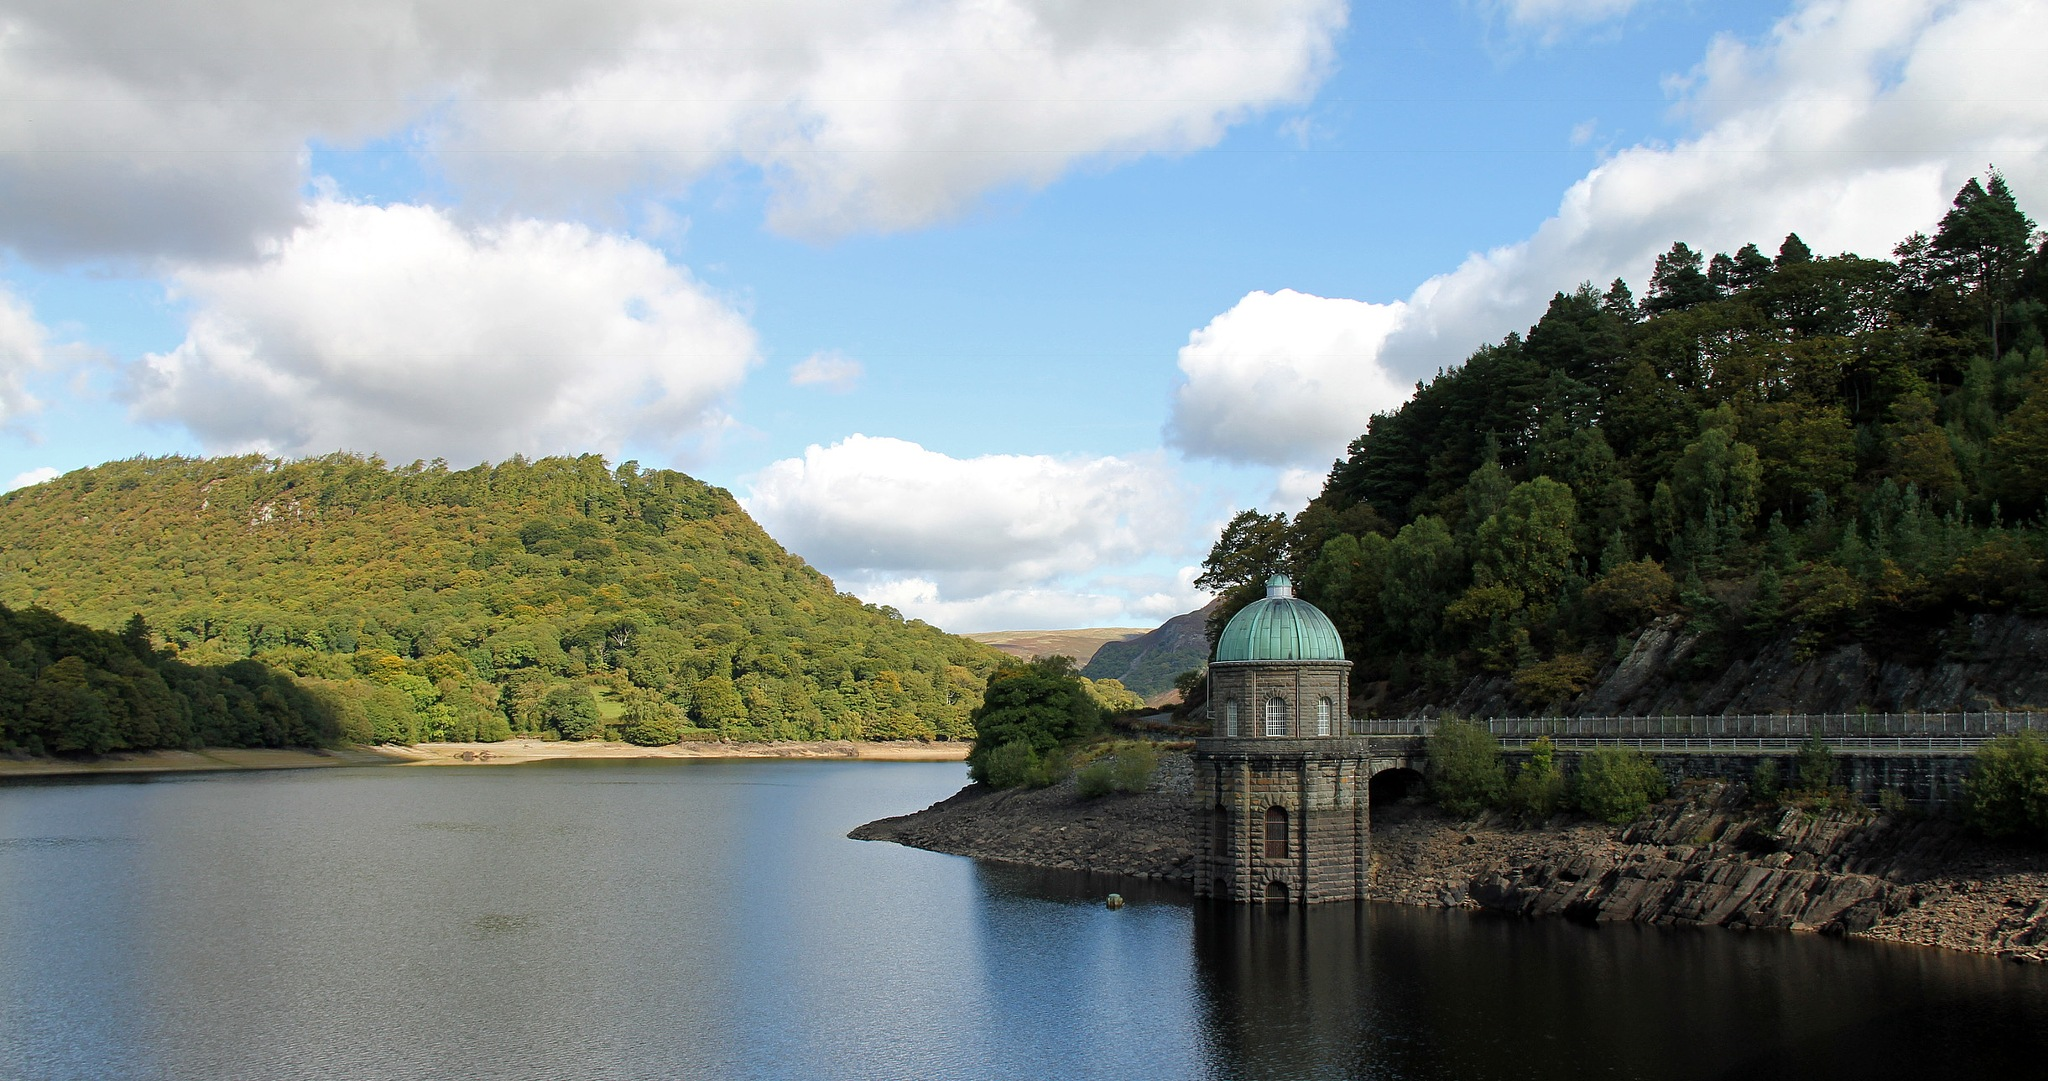 Elan Valley  by Jme